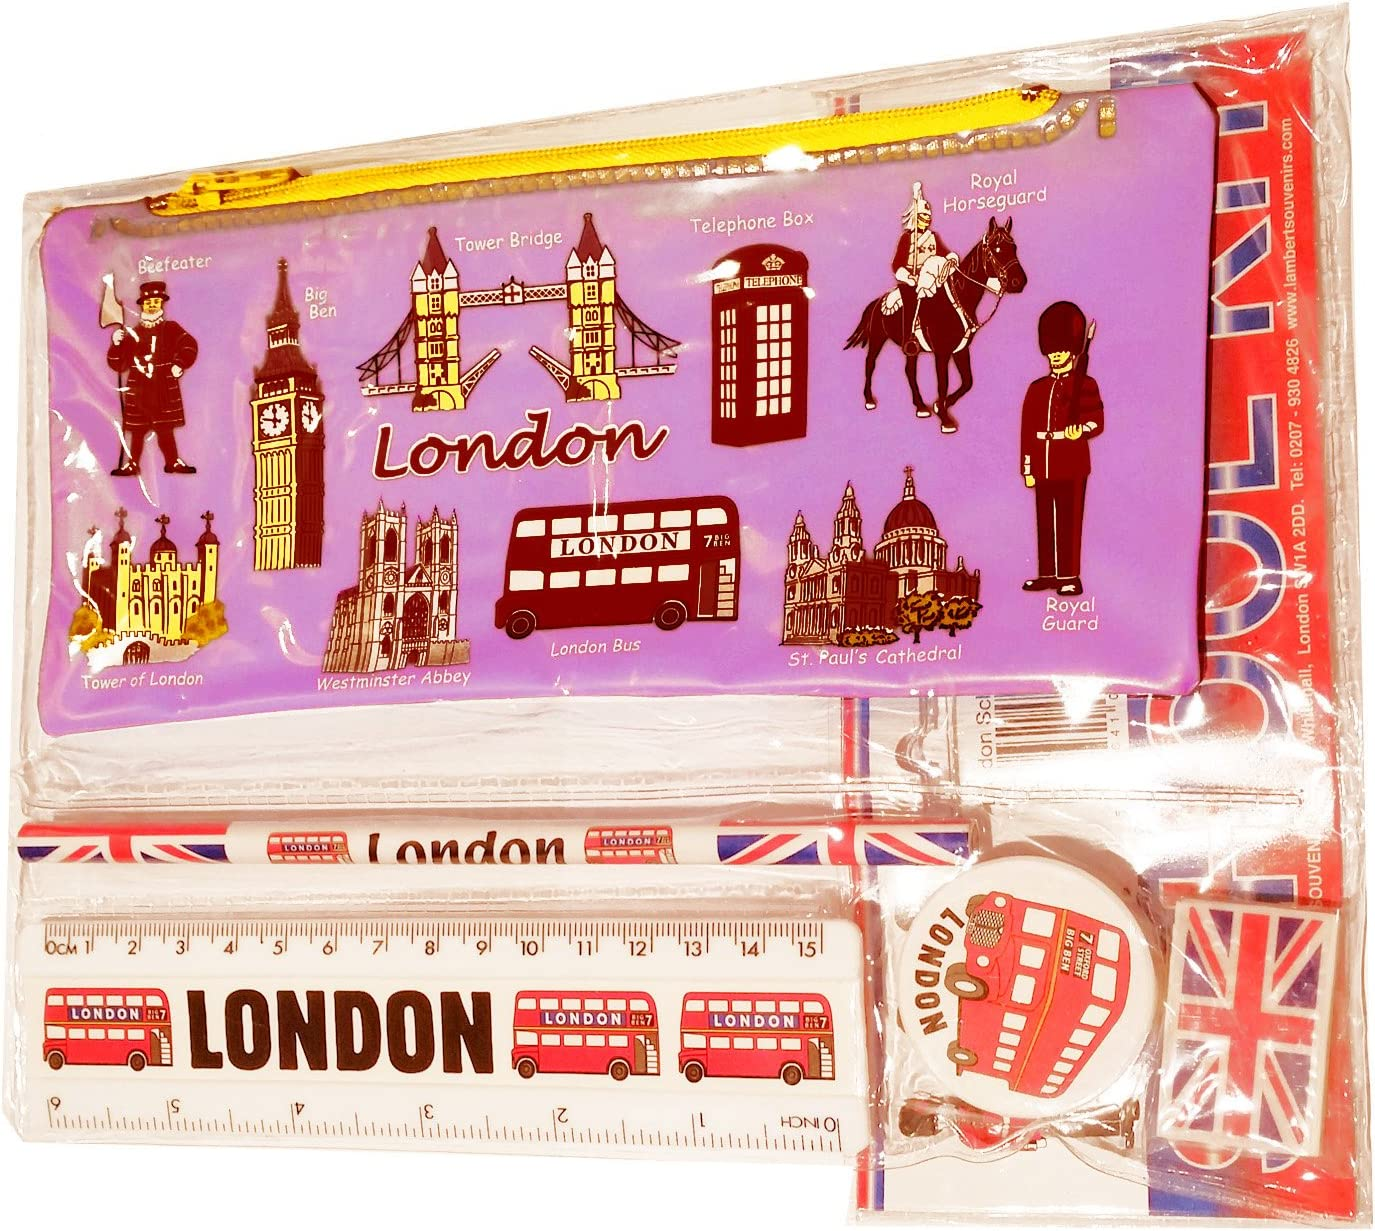 Black Cab // Red Phone Box // London Bus // Royal Gua - Trousse // Federmappchen // Caja de Lapices // Astuccio #1 Bestselling All In One School Kit London Souvenir Pen // Pencil Case Pink Eraser // Rubber Ruler EVERYTHING LONDON inches//cm Sharpener